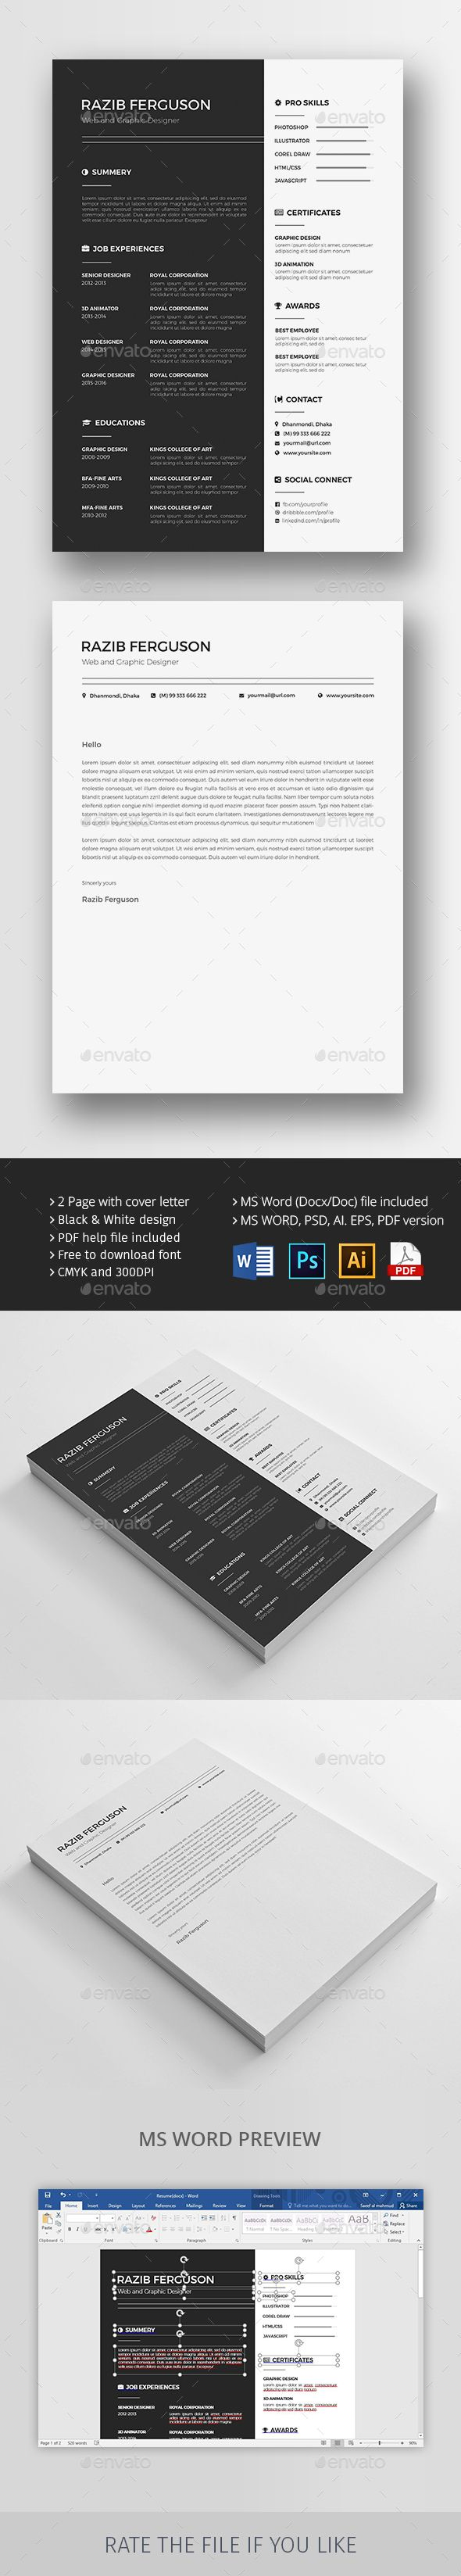 Illustrator Resume Templates Resume Job Cv Psd